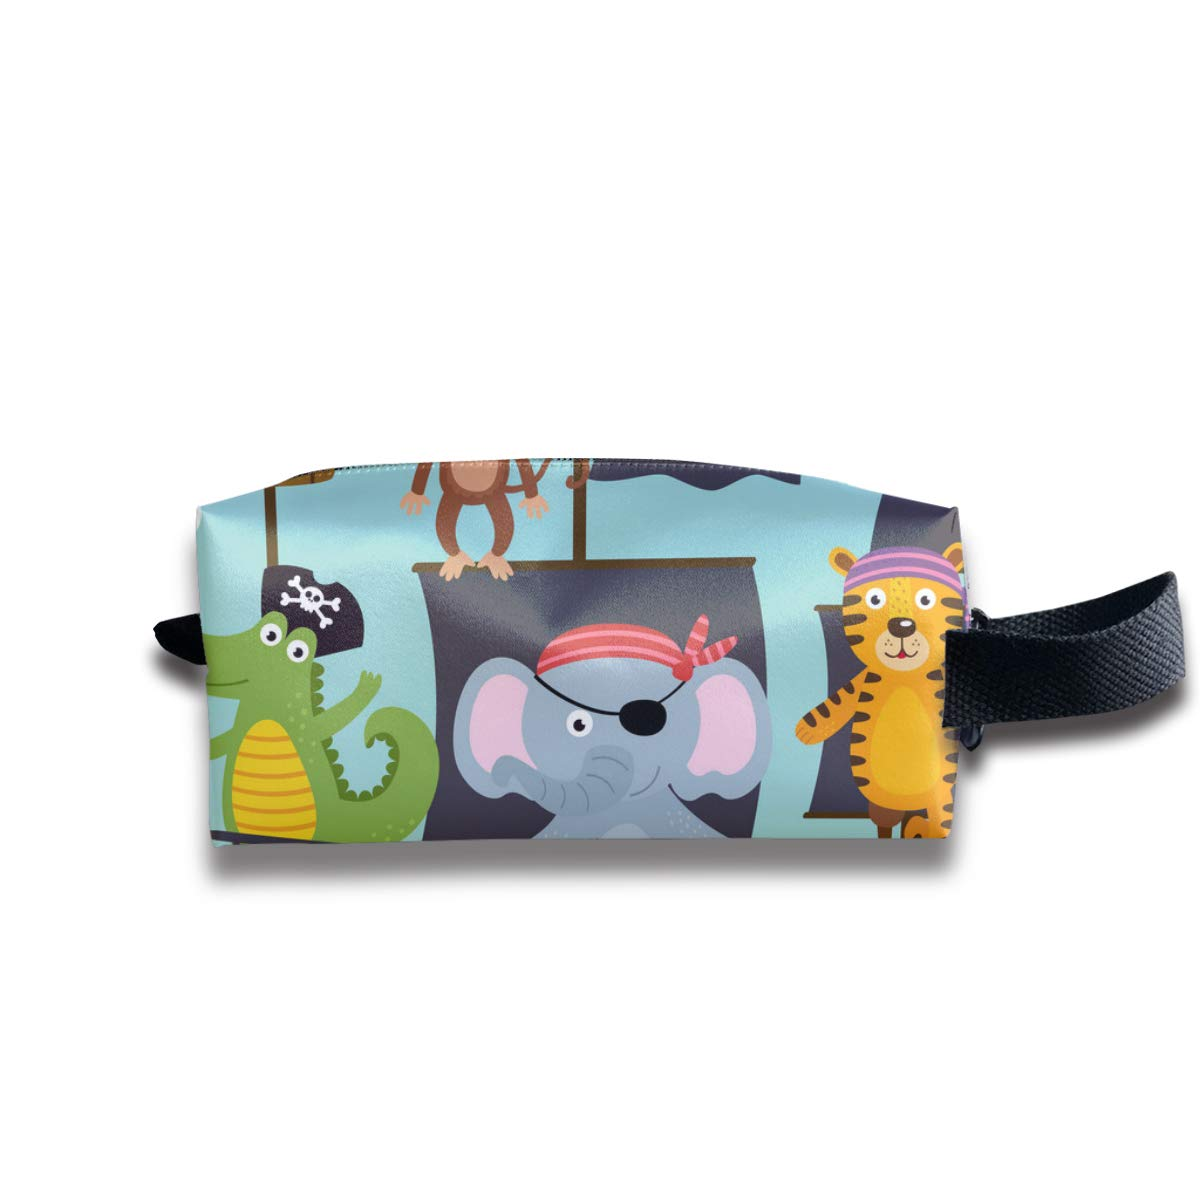 Ship With Pirates Animals Is Swimming On Sea_374 Canvas Makeup Bag Pouch Purse Handbag Organizer with Zipper